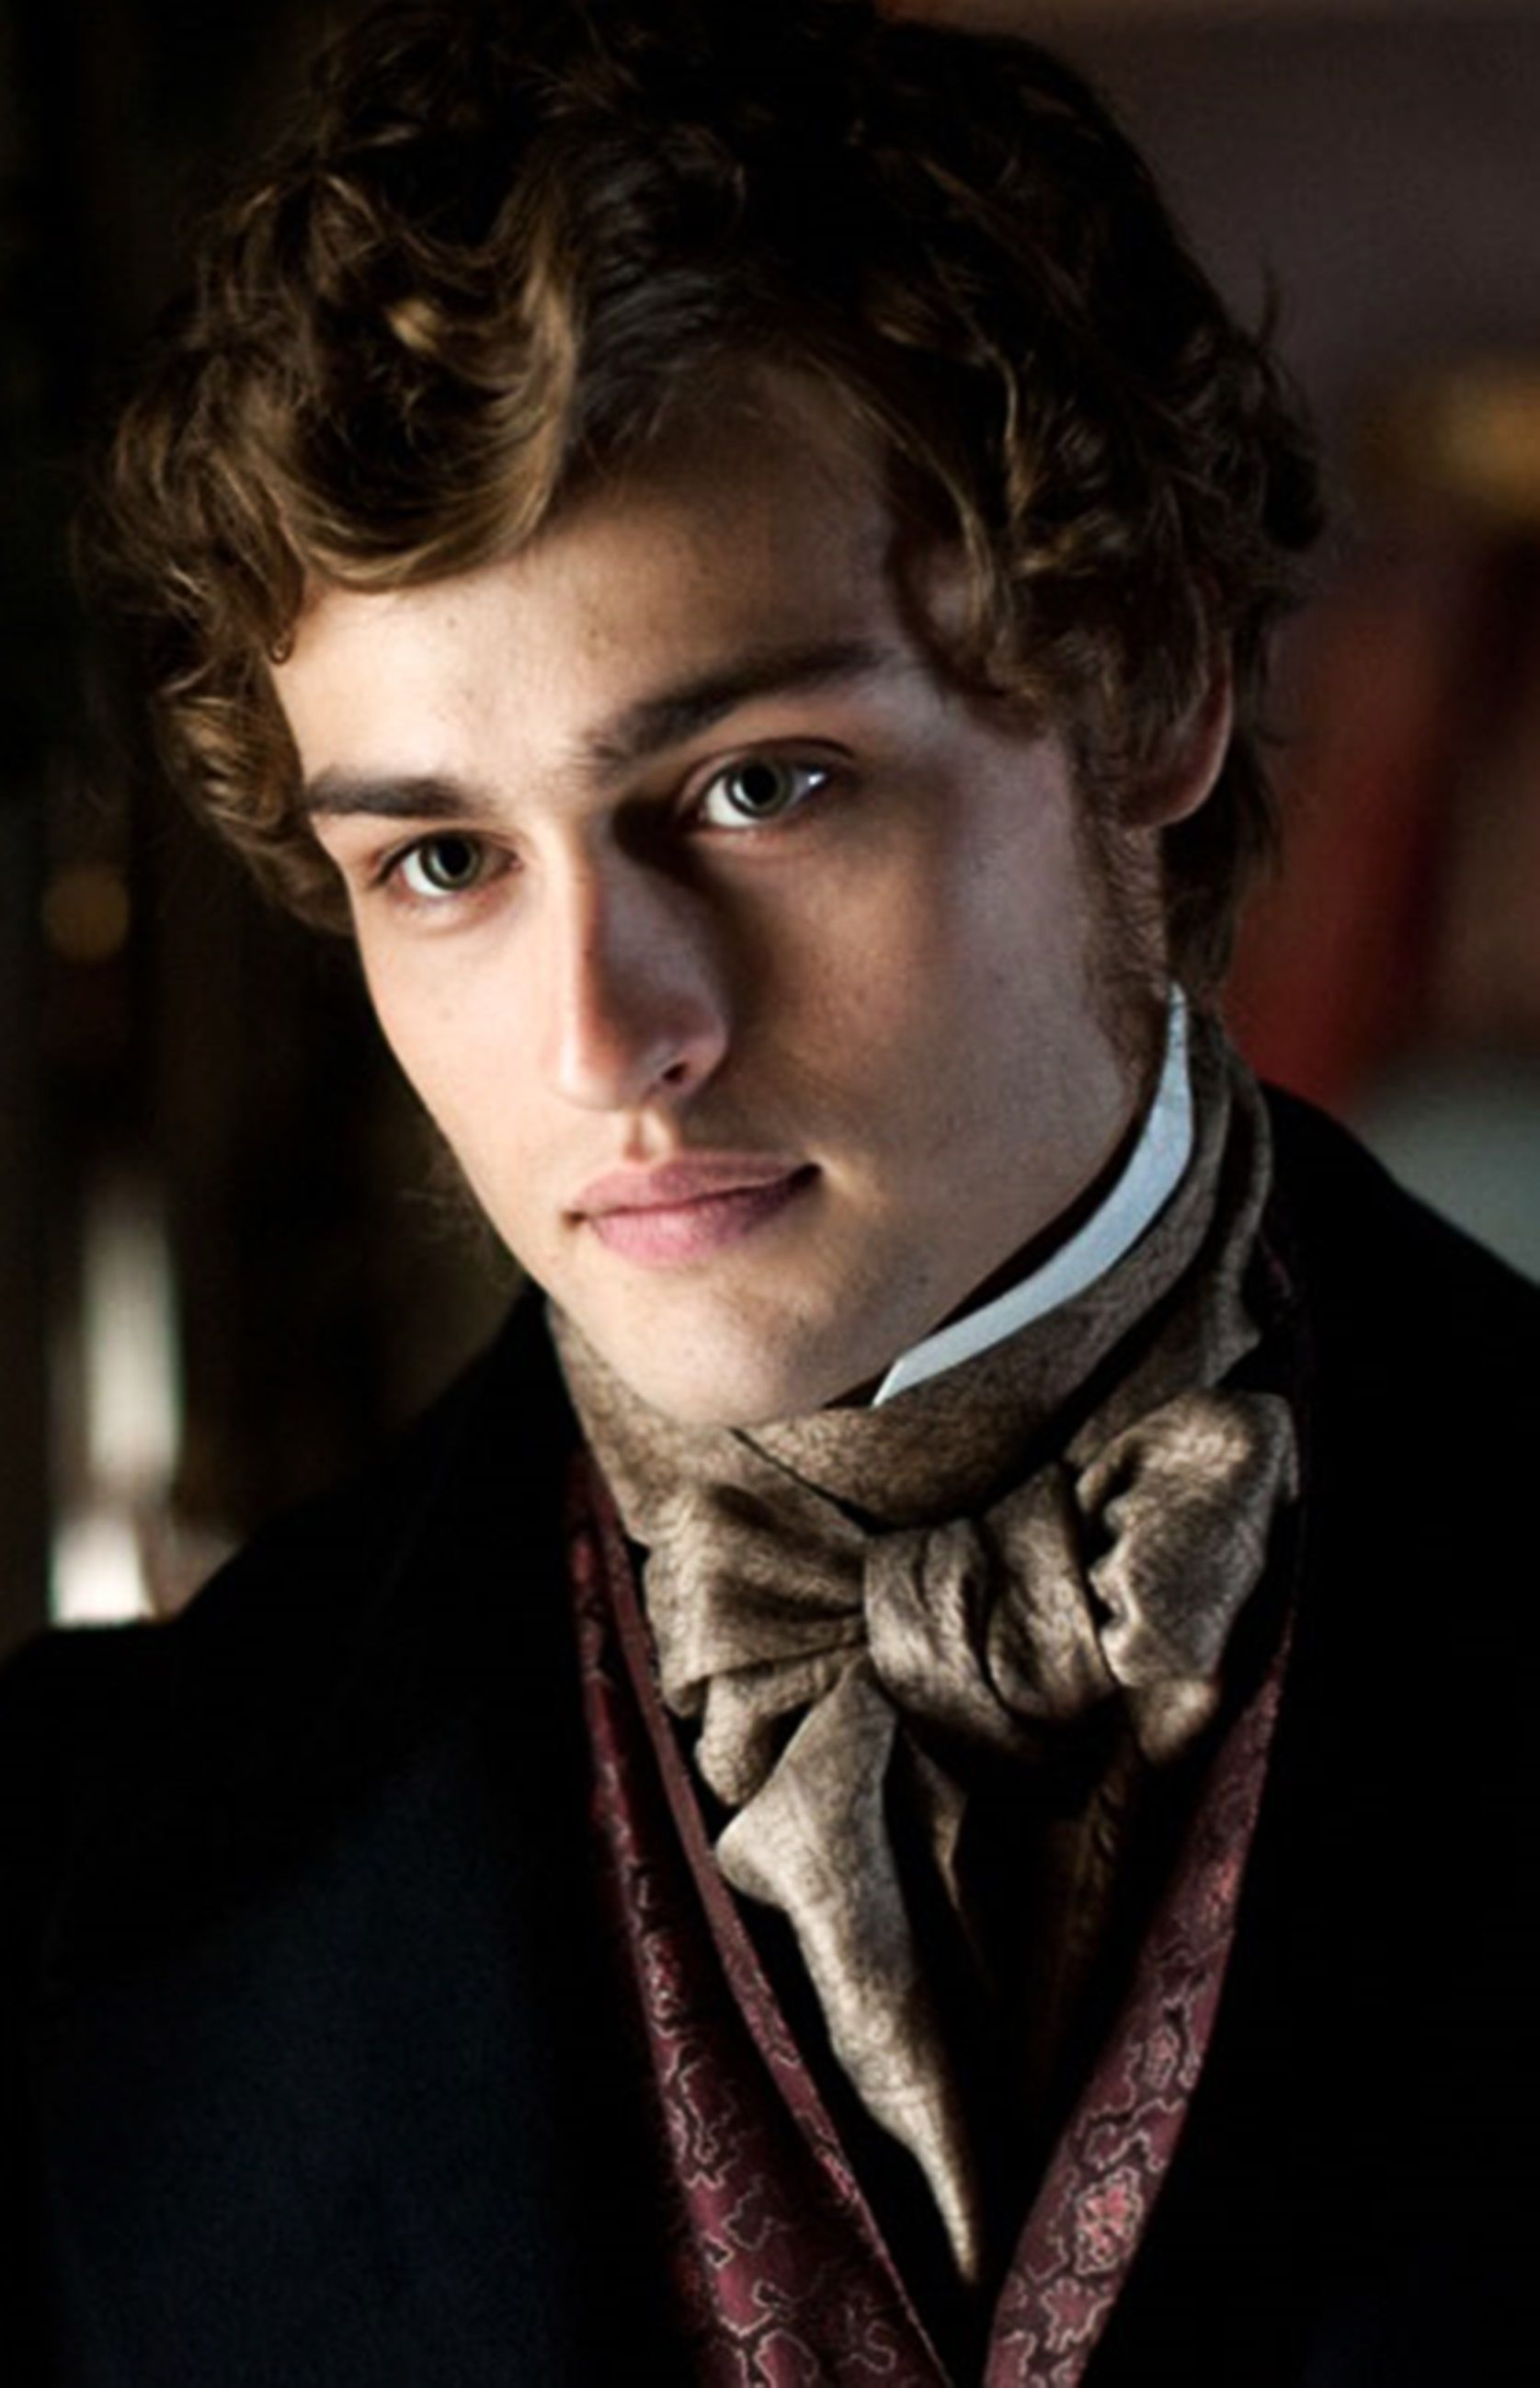 Douglas Booth portrays the character of Pip in the movie ...